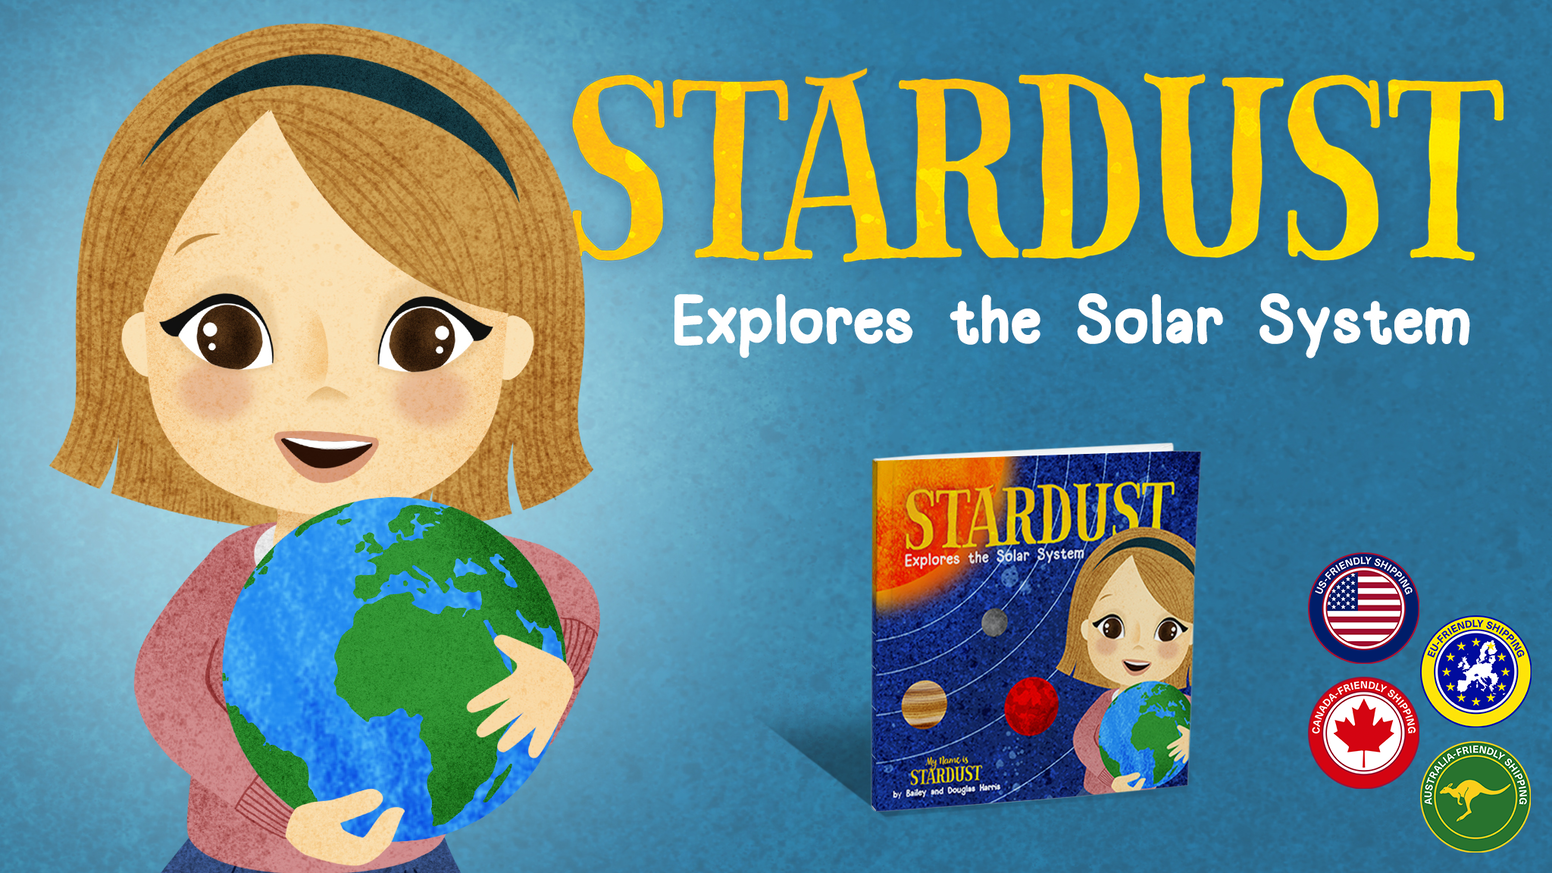 Inspire passion for science and wonder with this children's STEM book exploring the Big Bang, the Solar System, and our place in space!